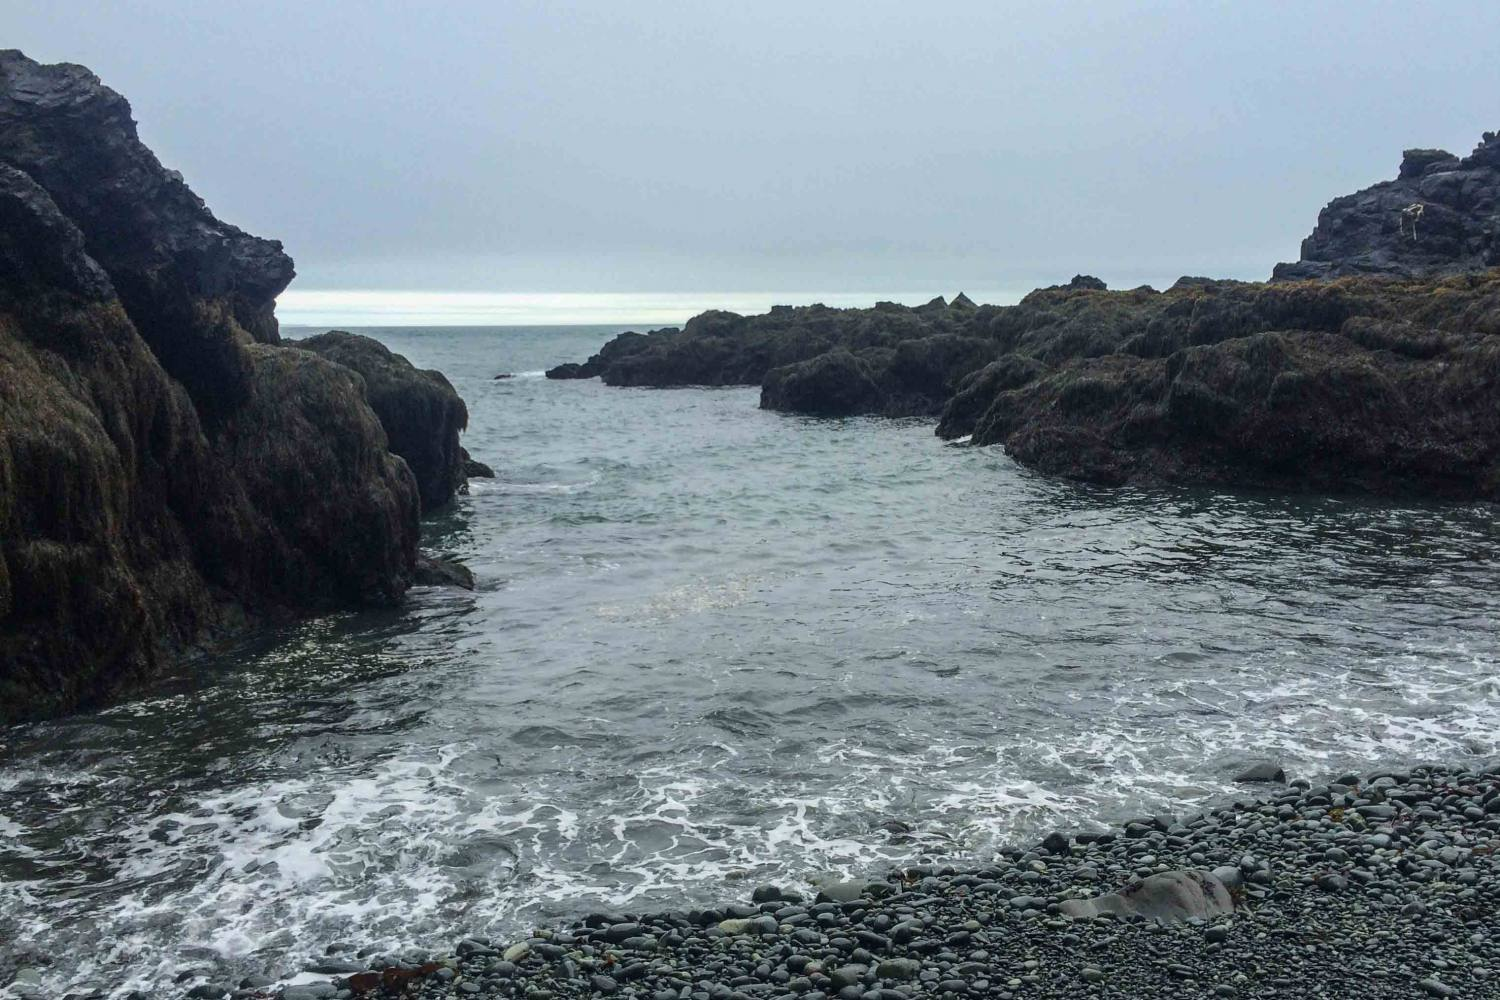 Cutler Coast in Maine is one of Ryan's favorite spots for hiking. If you're looking for some peace and quiet, you'll love it, too! Click for details on planning your hike.